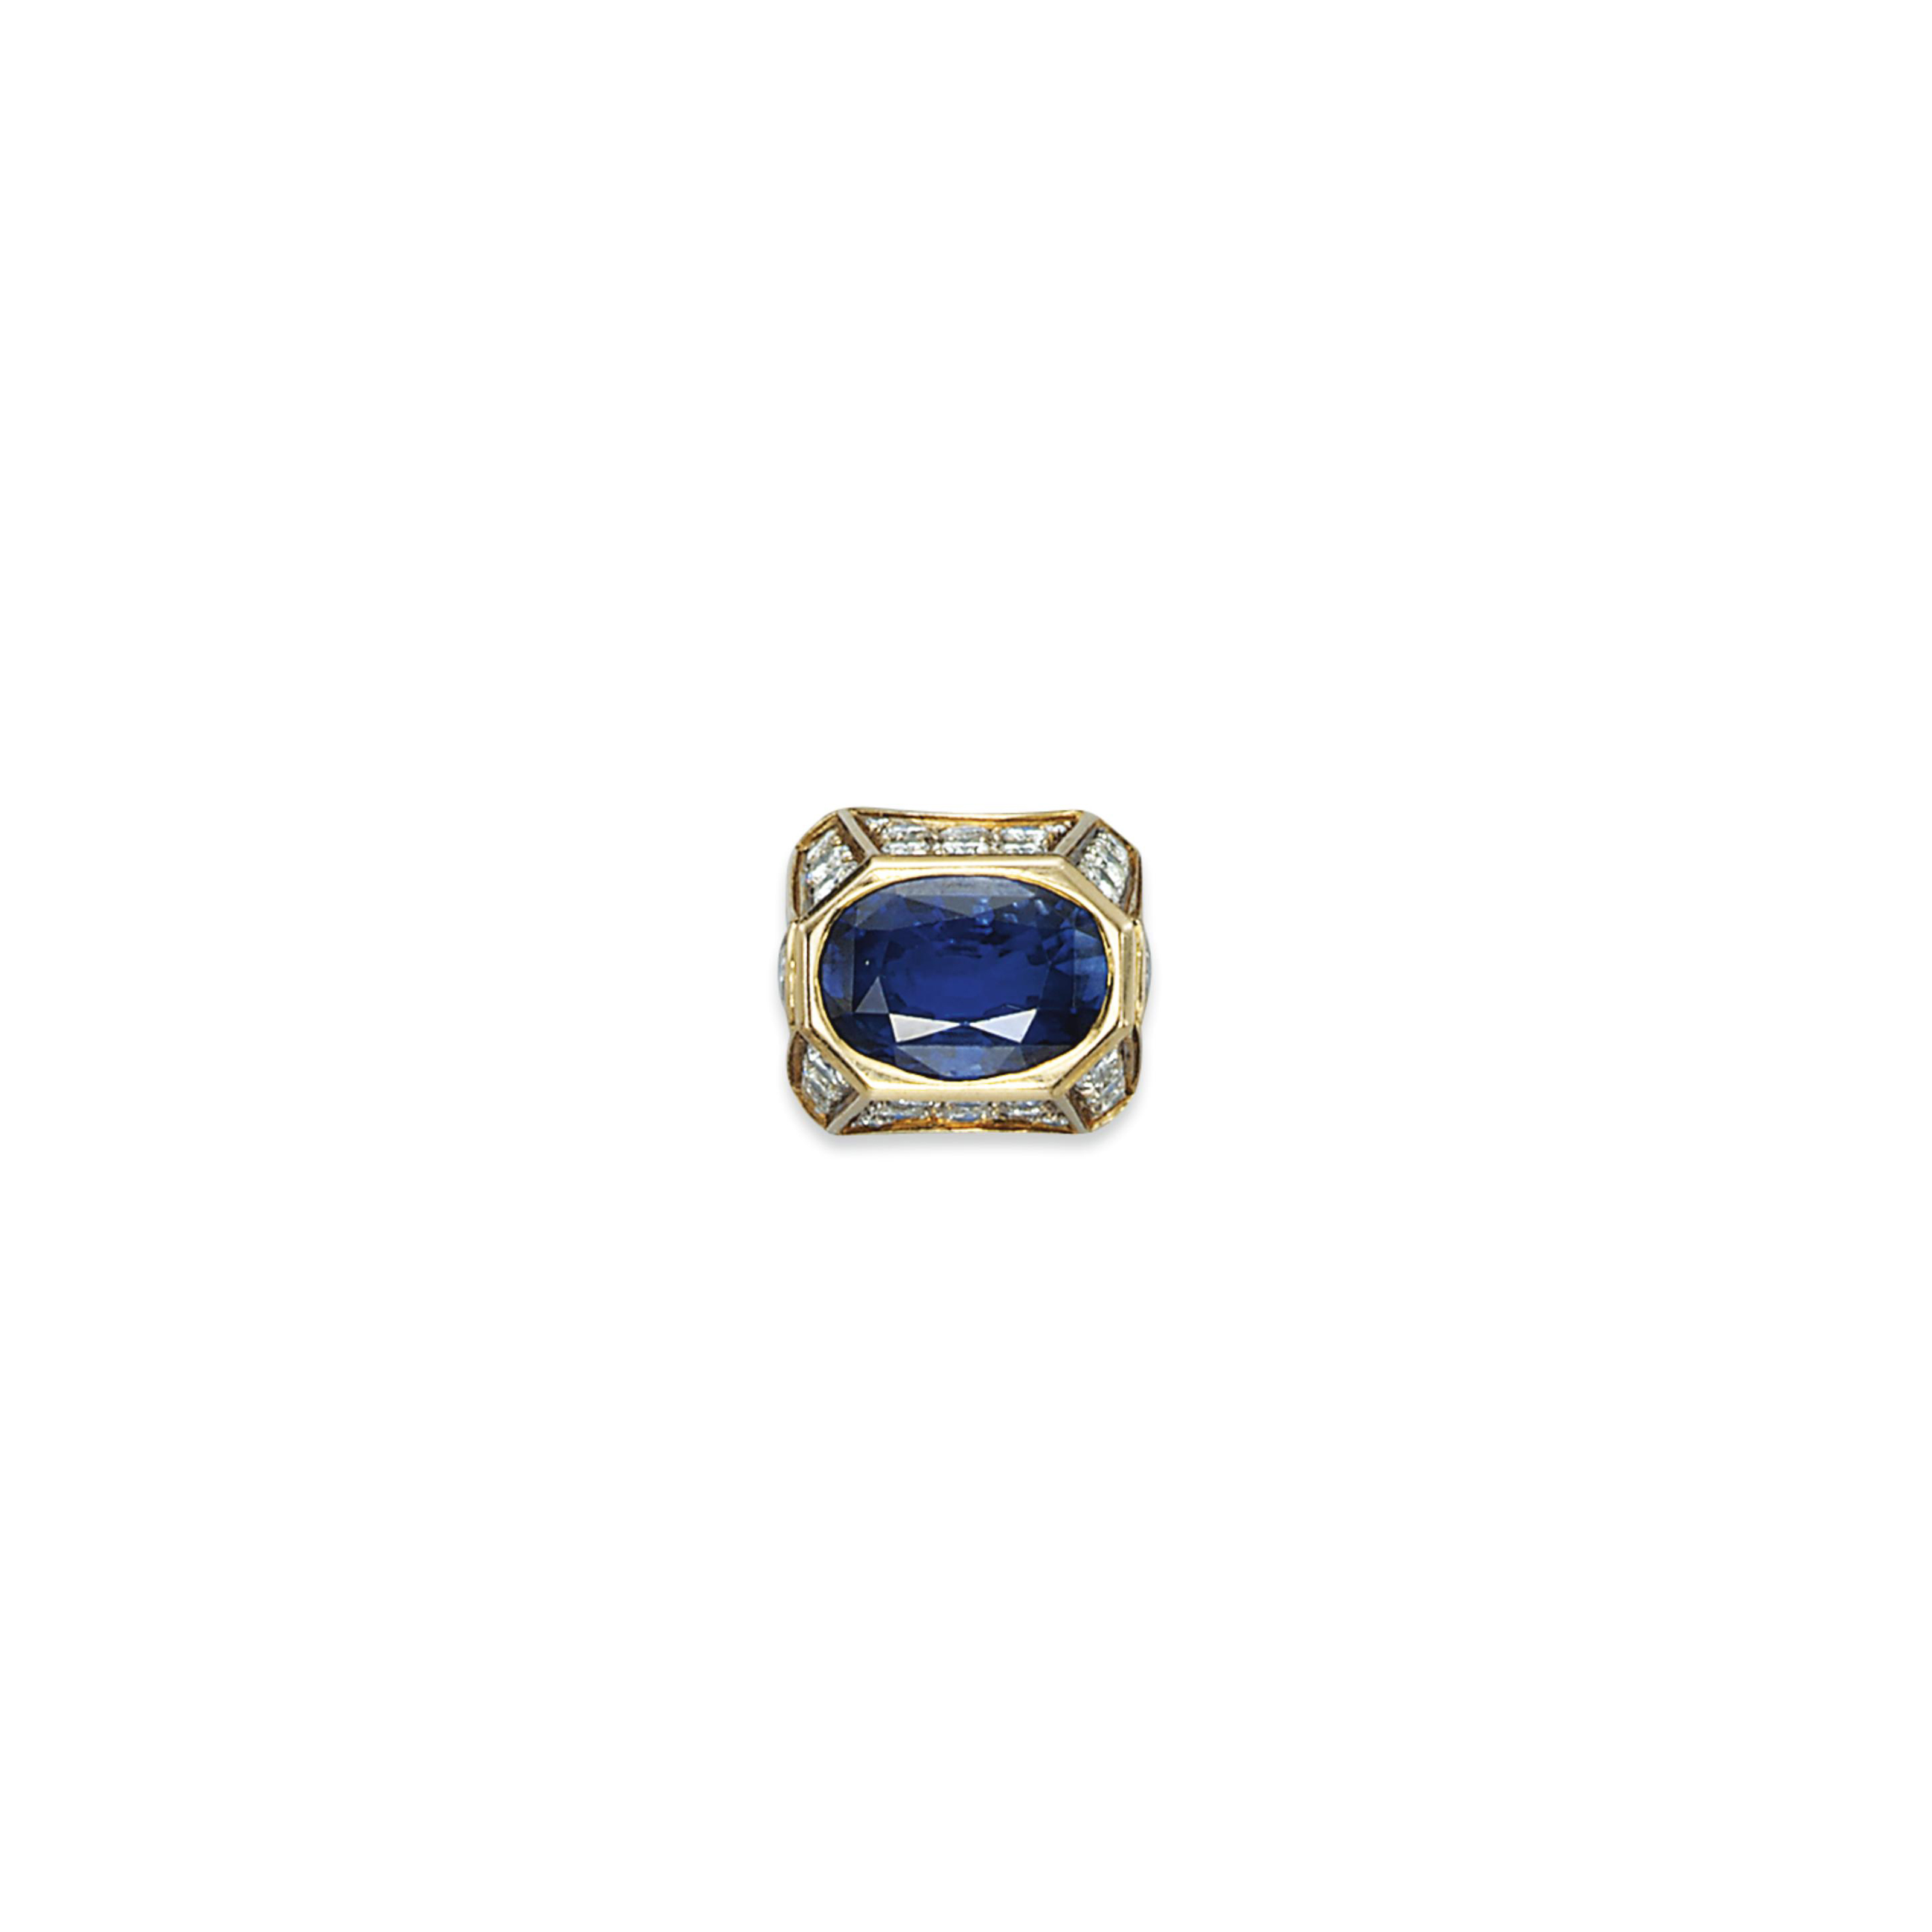 A SAPPHIRE AND DIAMOND RING, BY REPOSSI